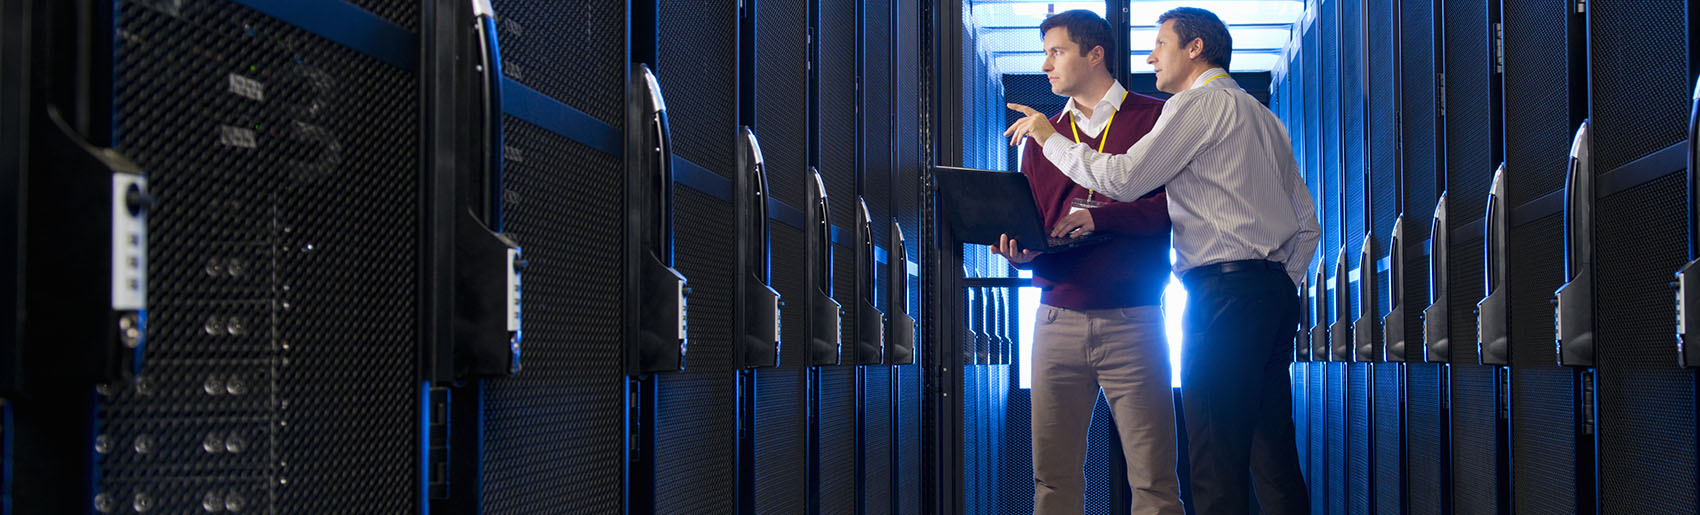 Two people standing near computer servers